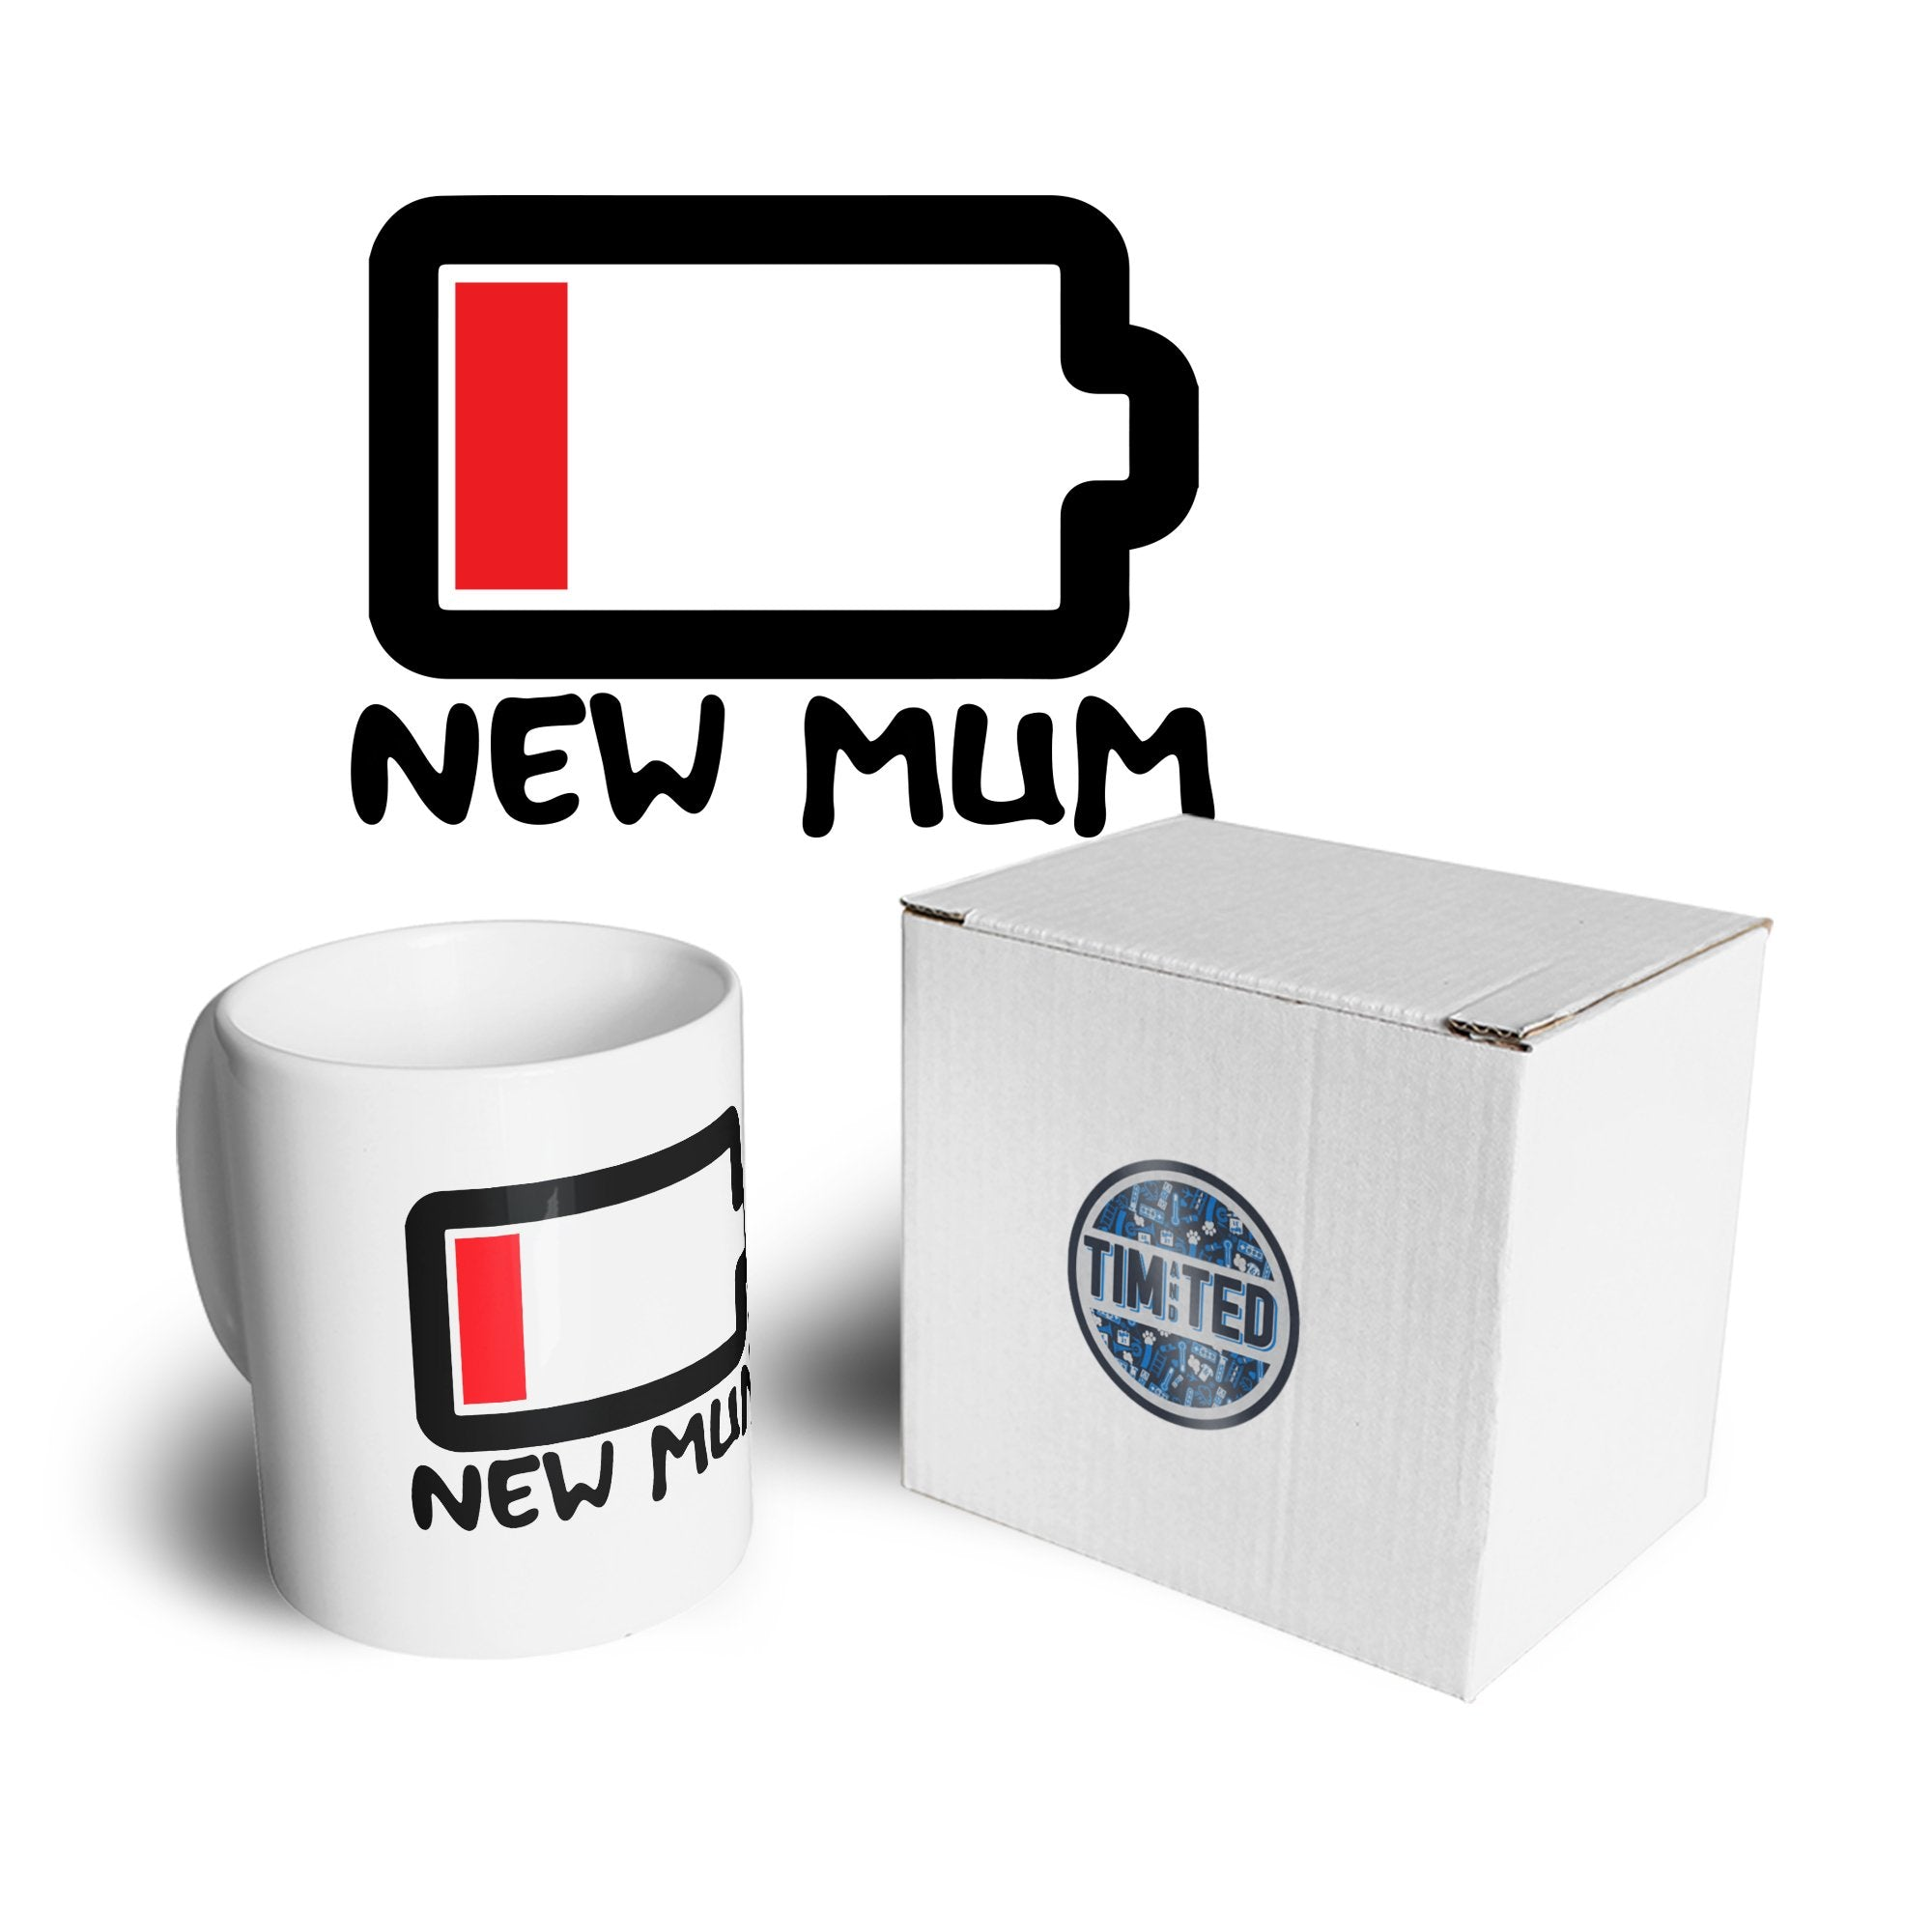 New Mum Mug Low Battery Remaining Novelty Joke Coffee Tea Cup